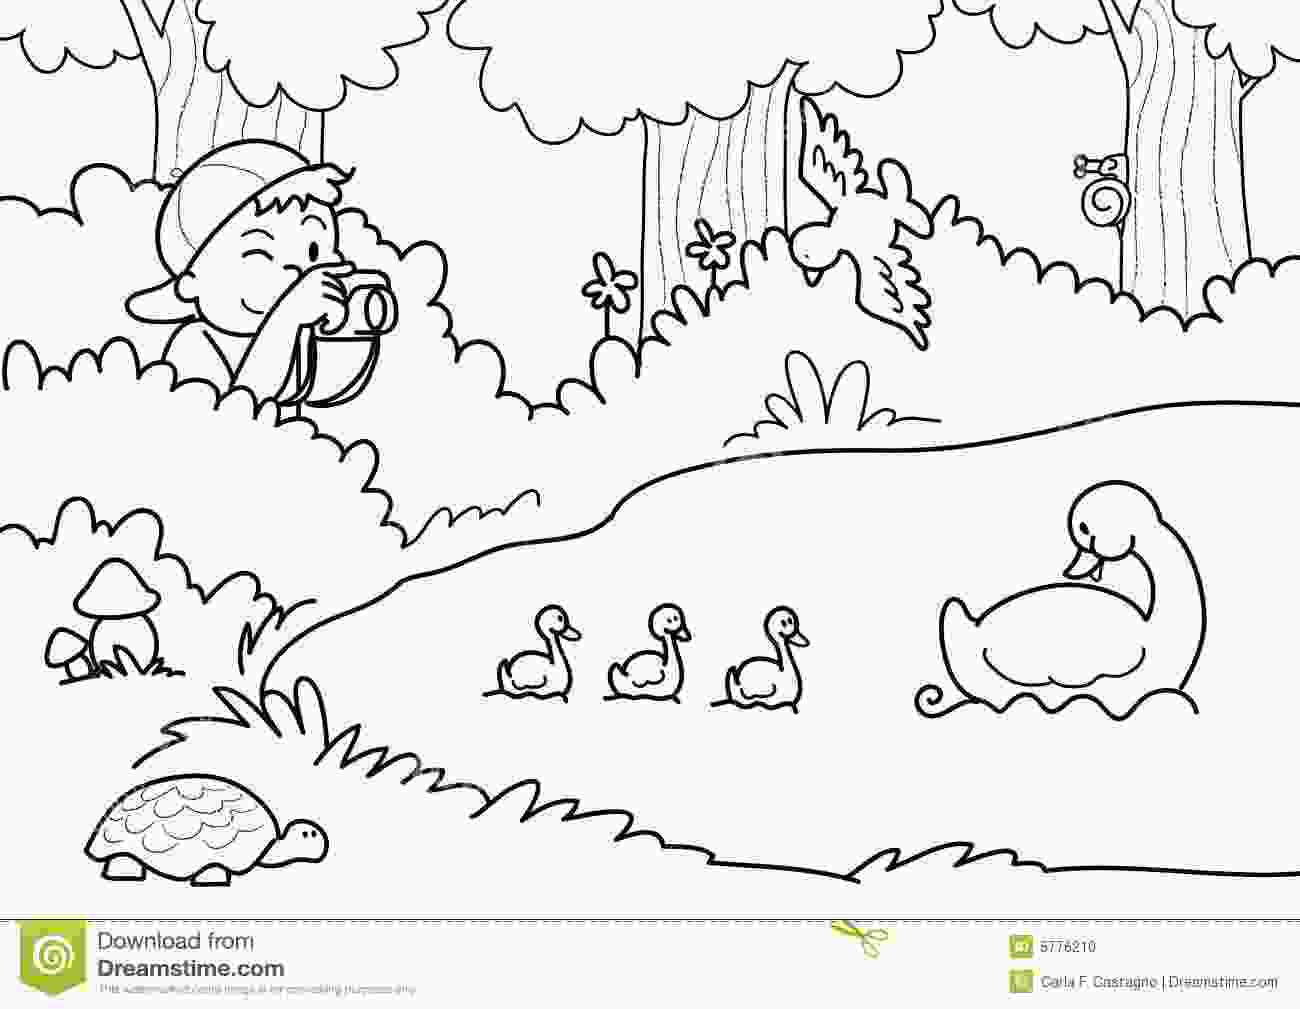 coloring nature pictures shooting nature coloring vector stock vector